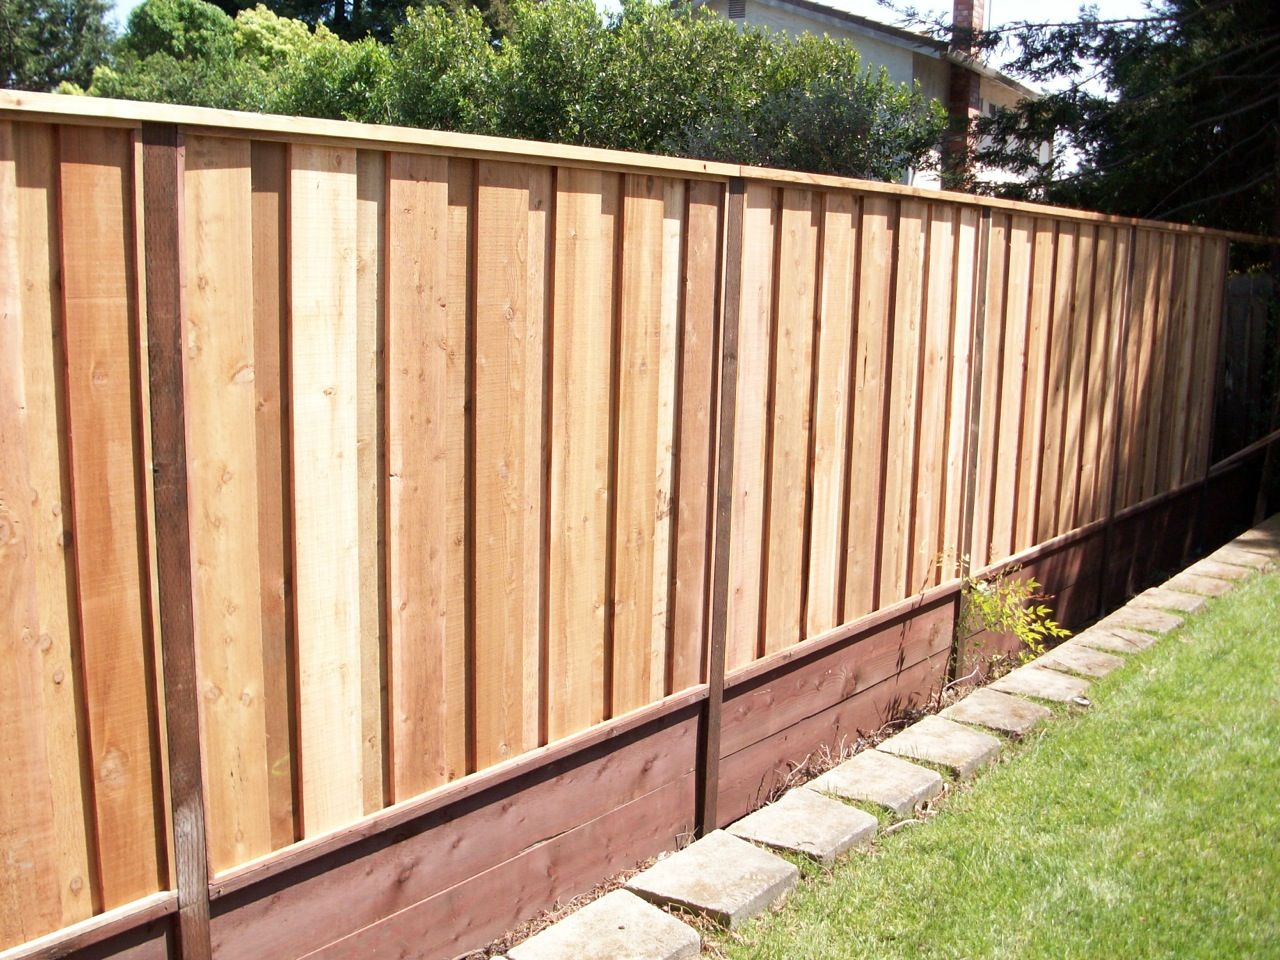 Board-on-Board fence with retaining wall and 2x6 top cap | Retaining ...